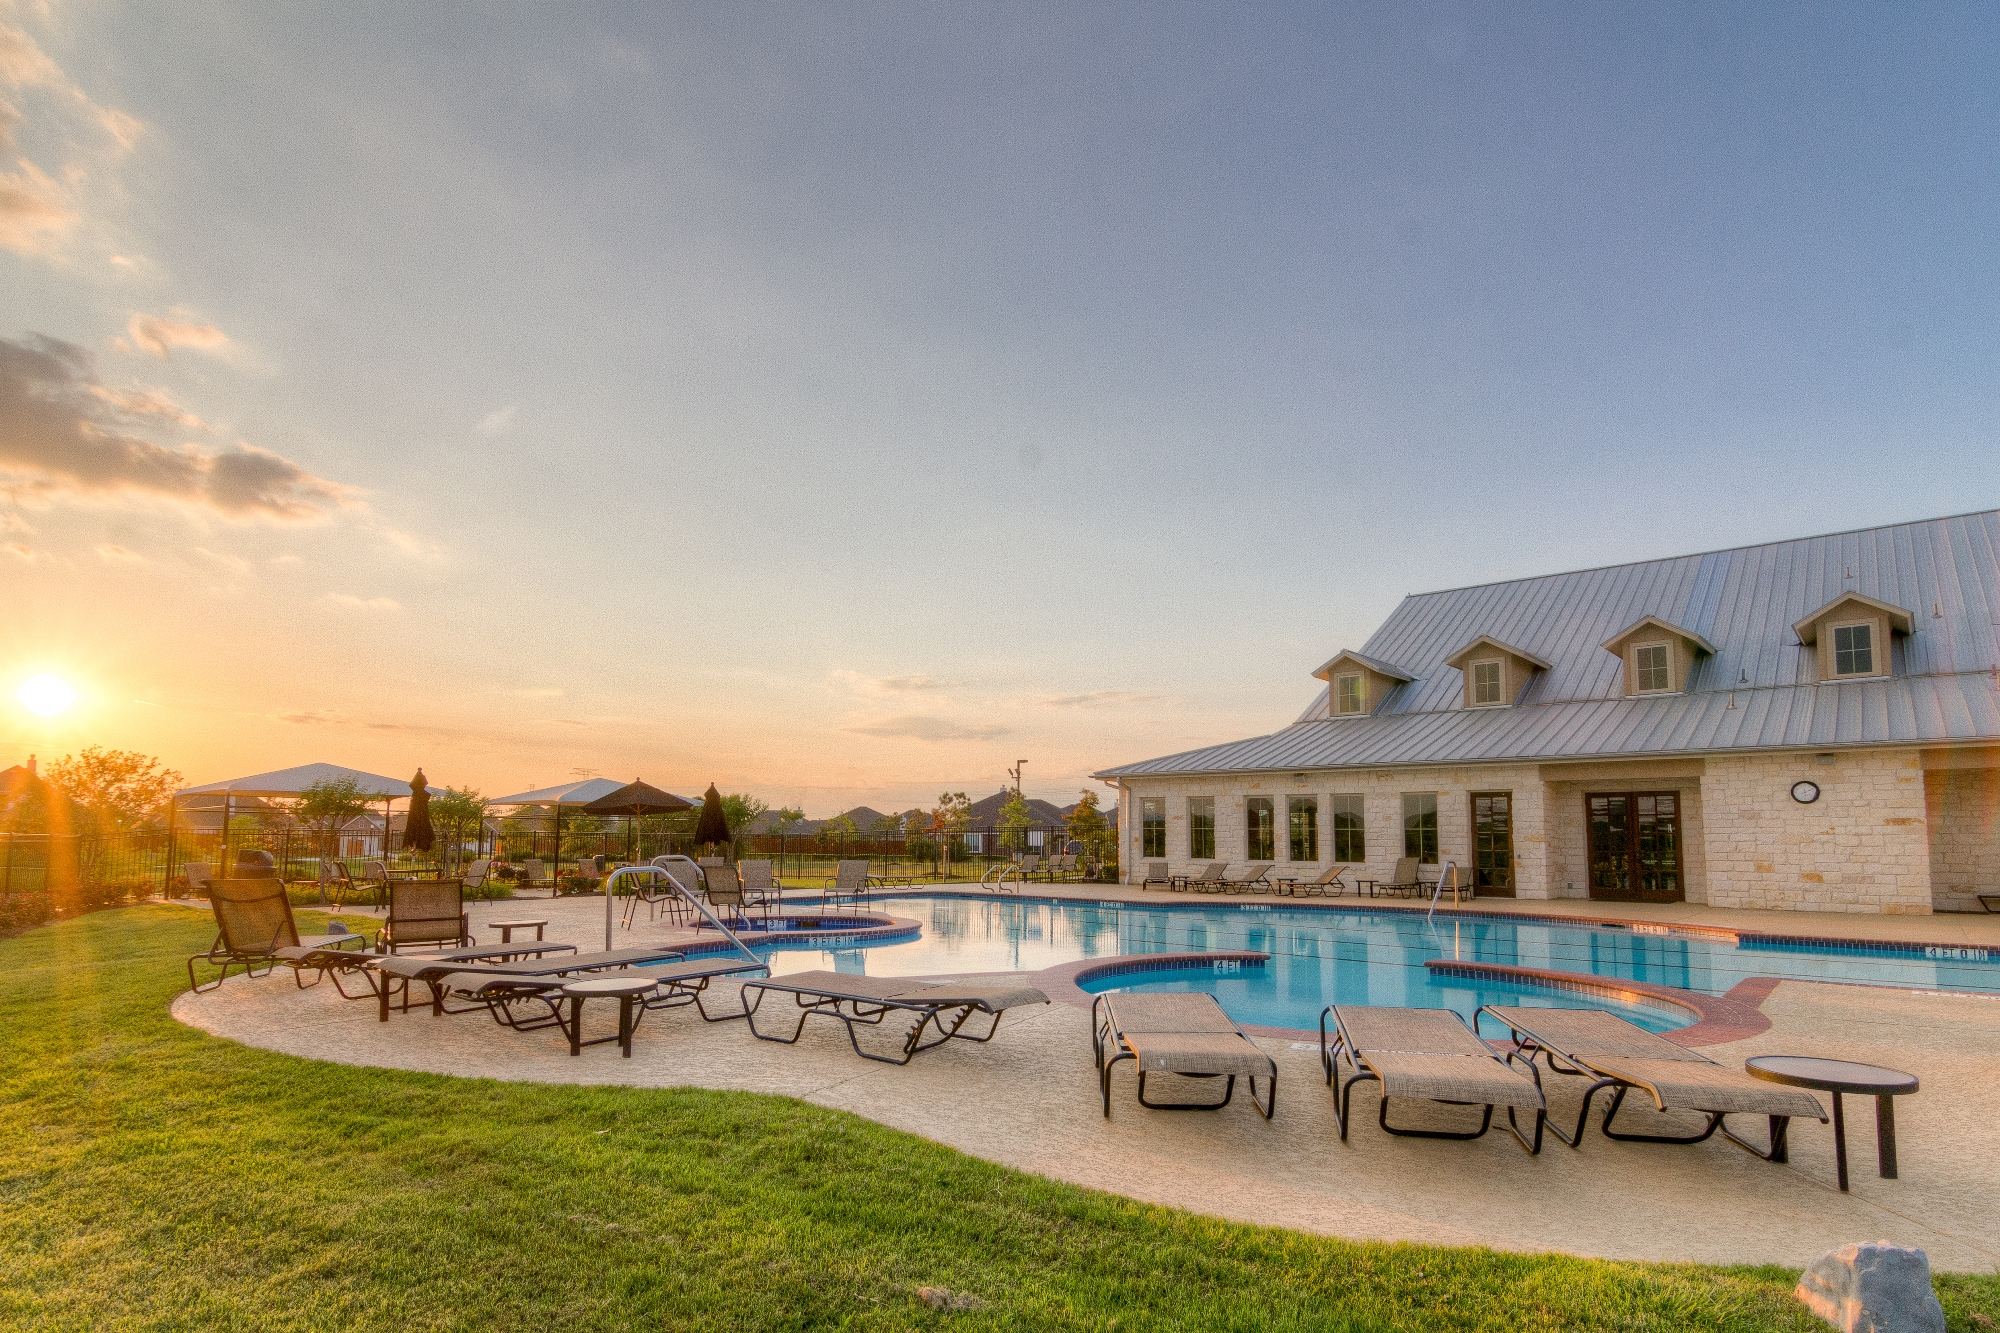 The Heritage at Towne Lake Amenities